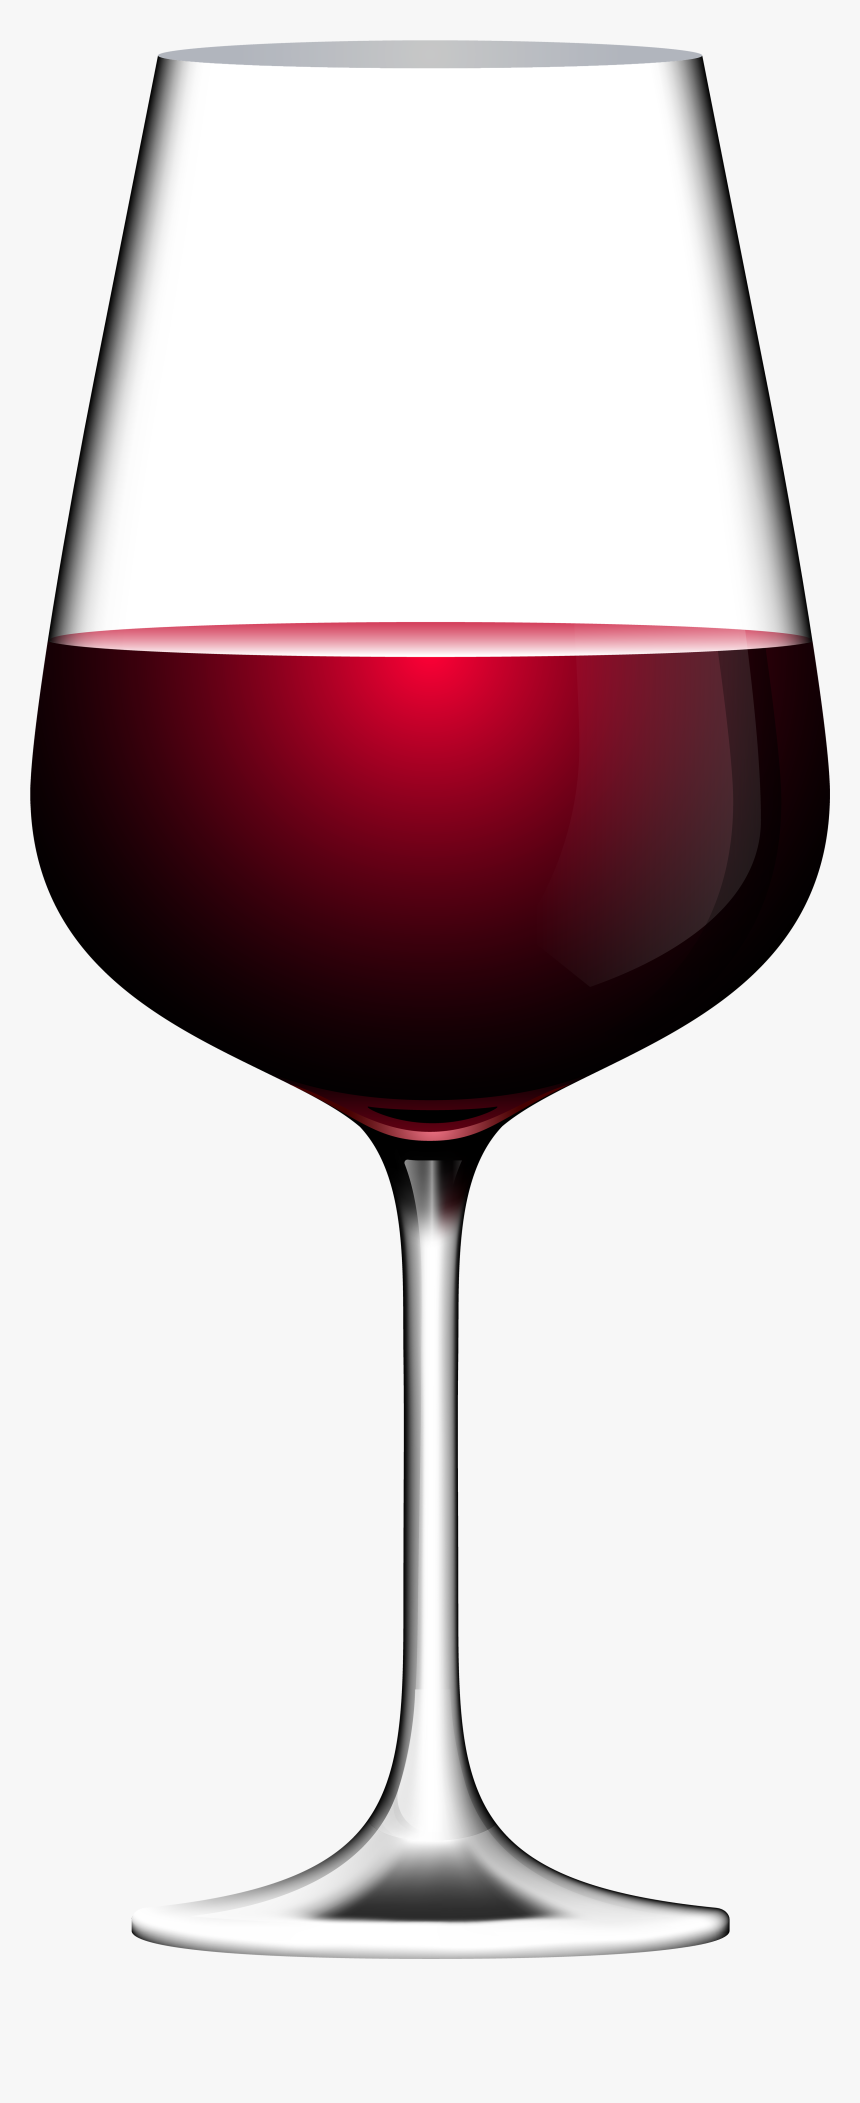 Red Wine Glass Transparent Clip Art Image Wine Glass Transparent Background Hd Png Download Kindpng